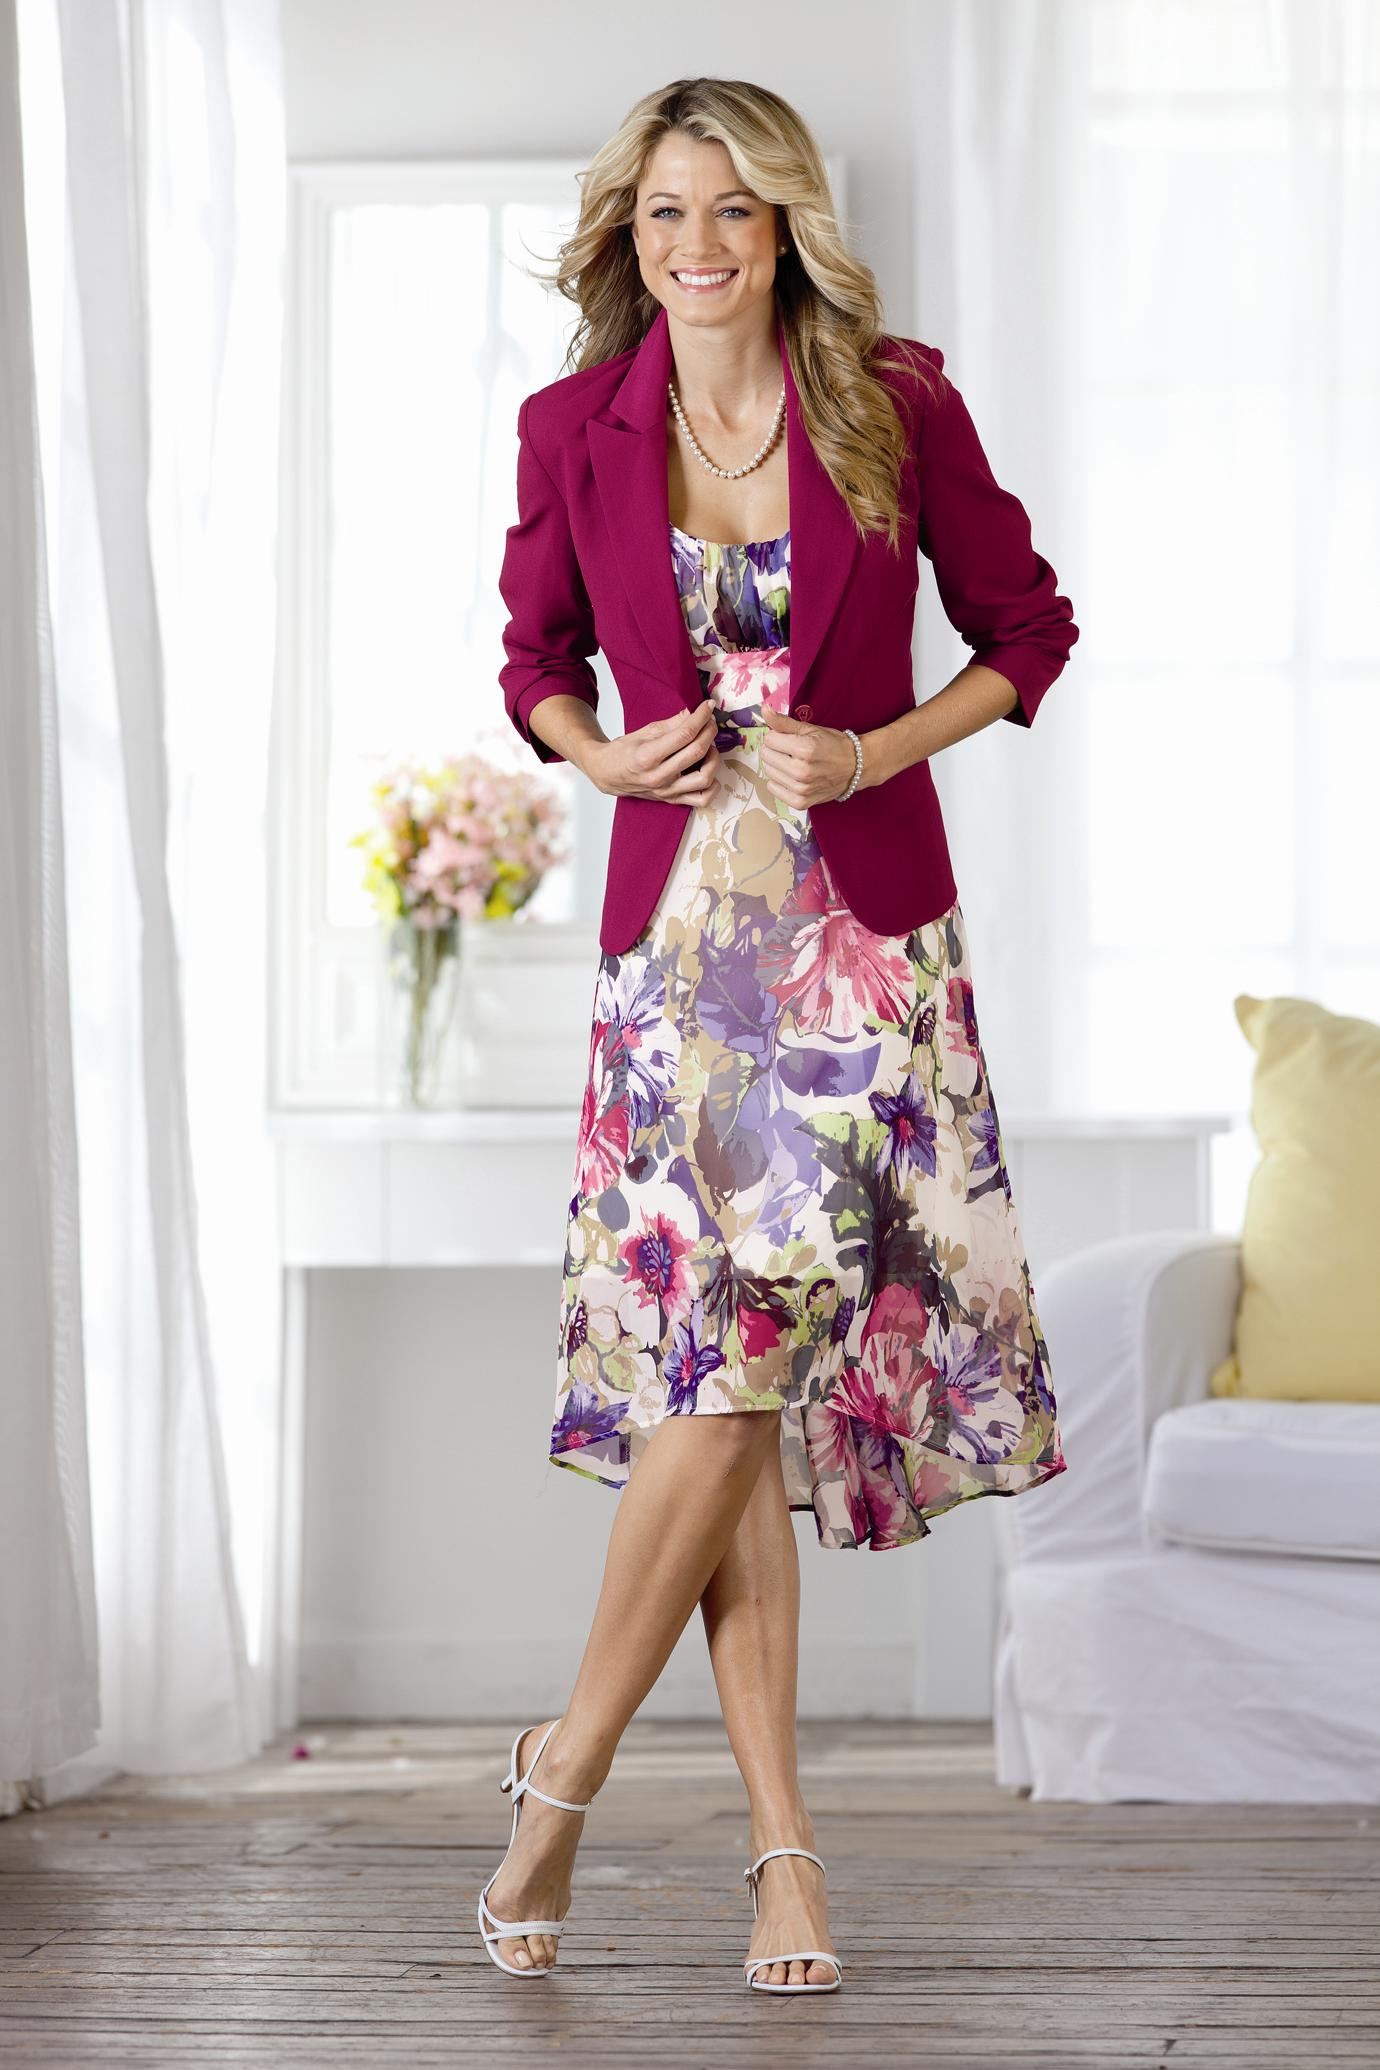 The model in dress with blazer.